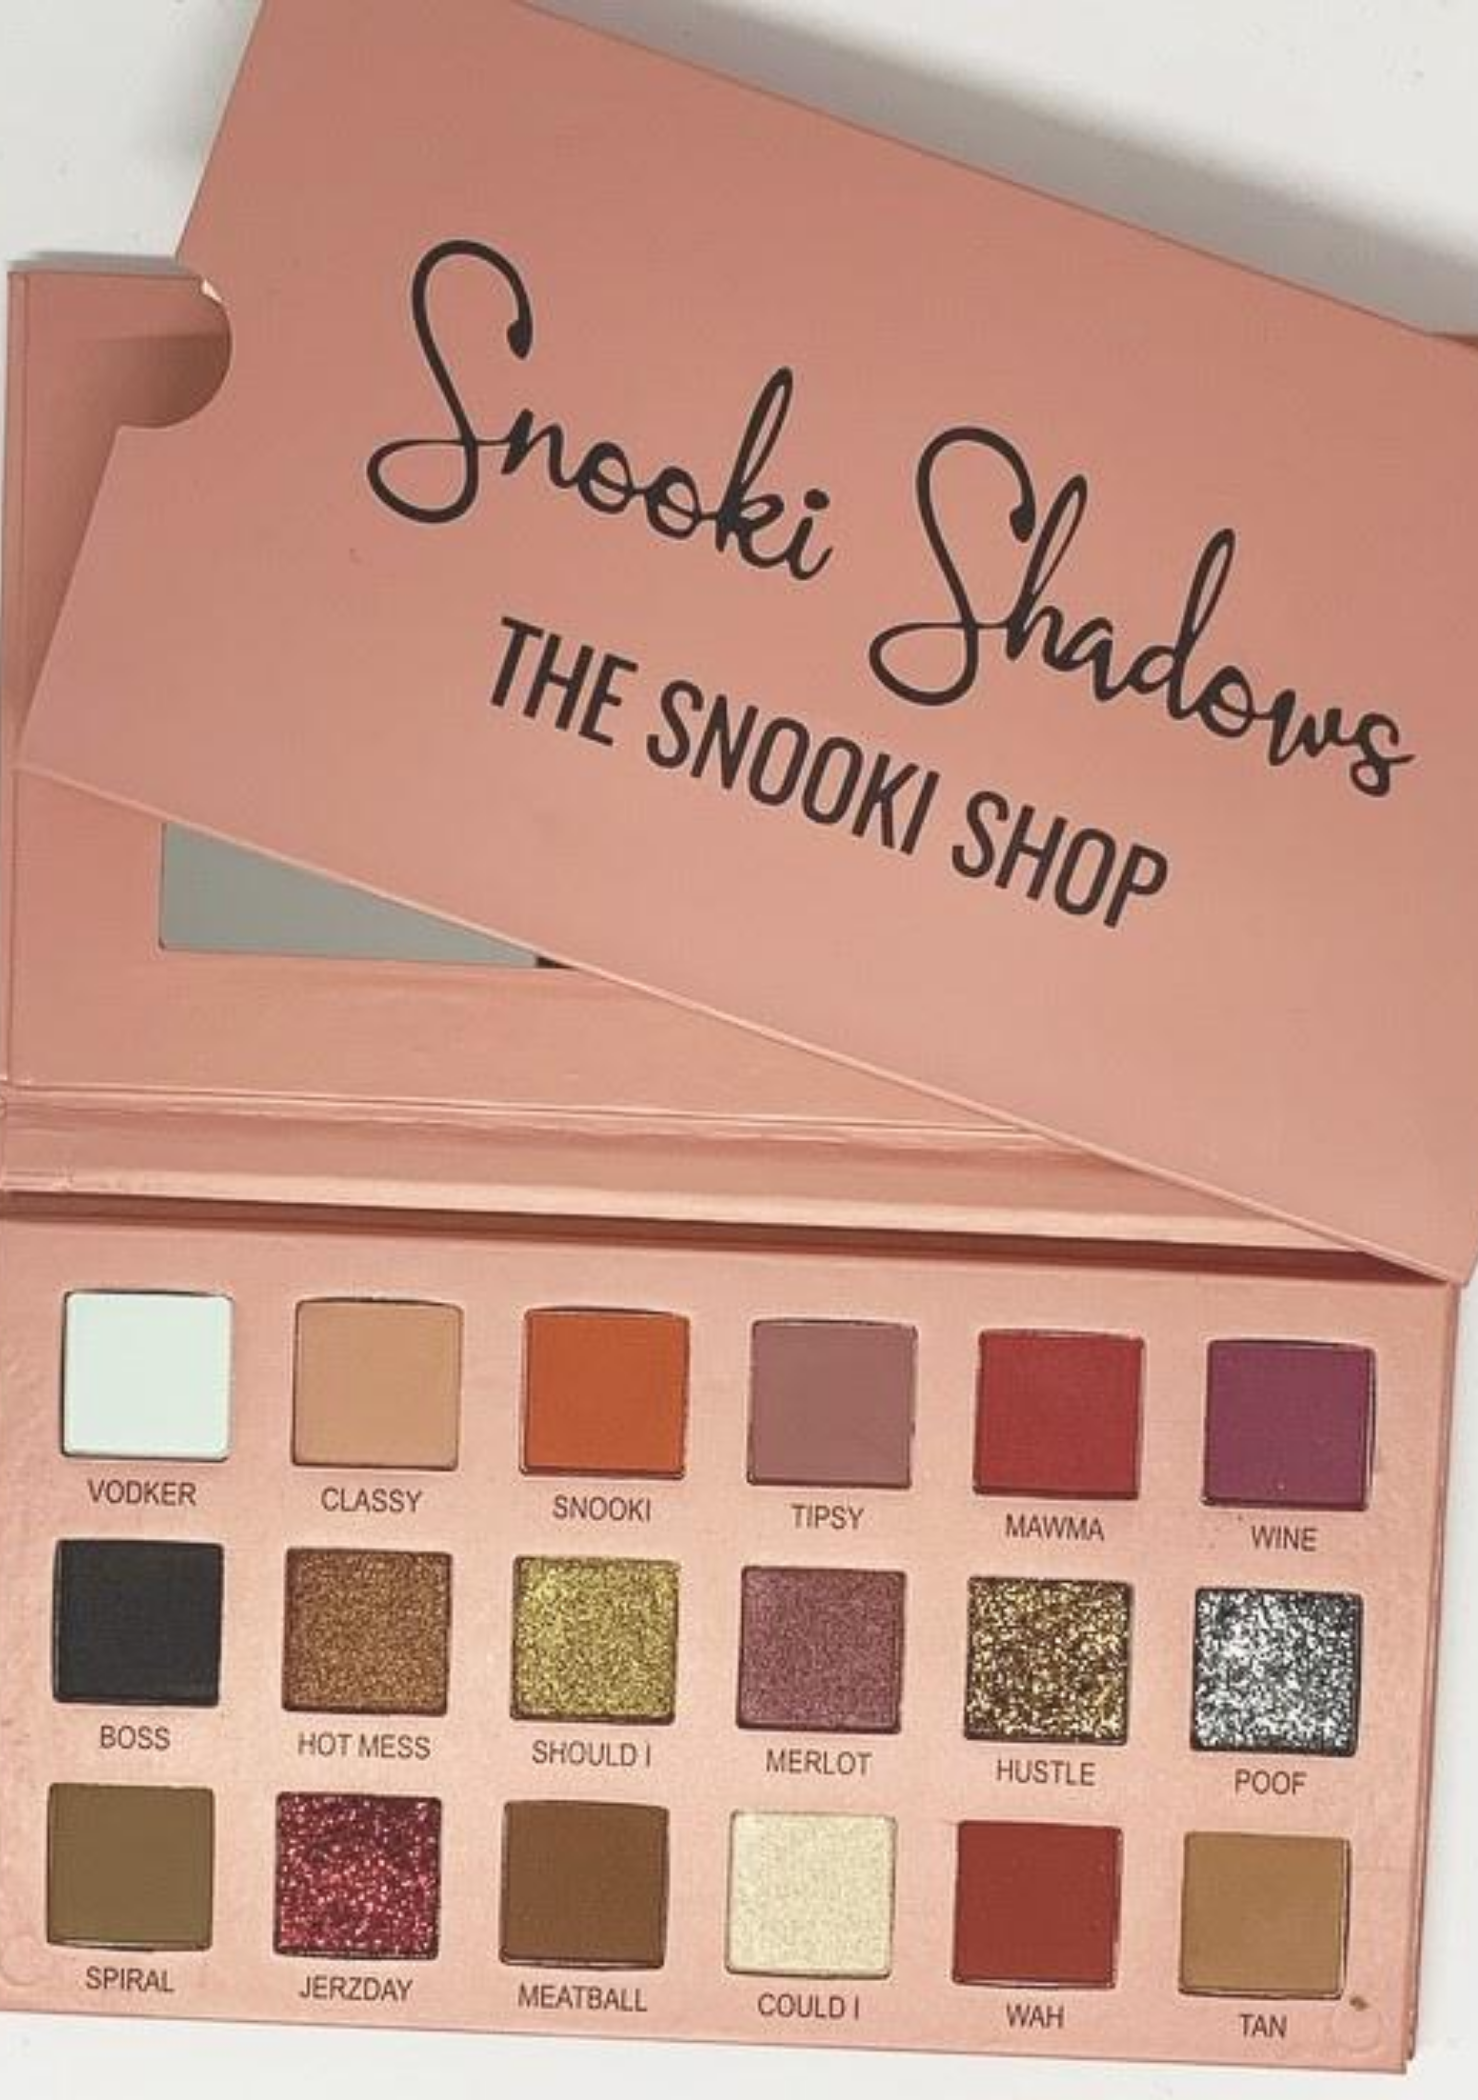 SNOOKI Shadows